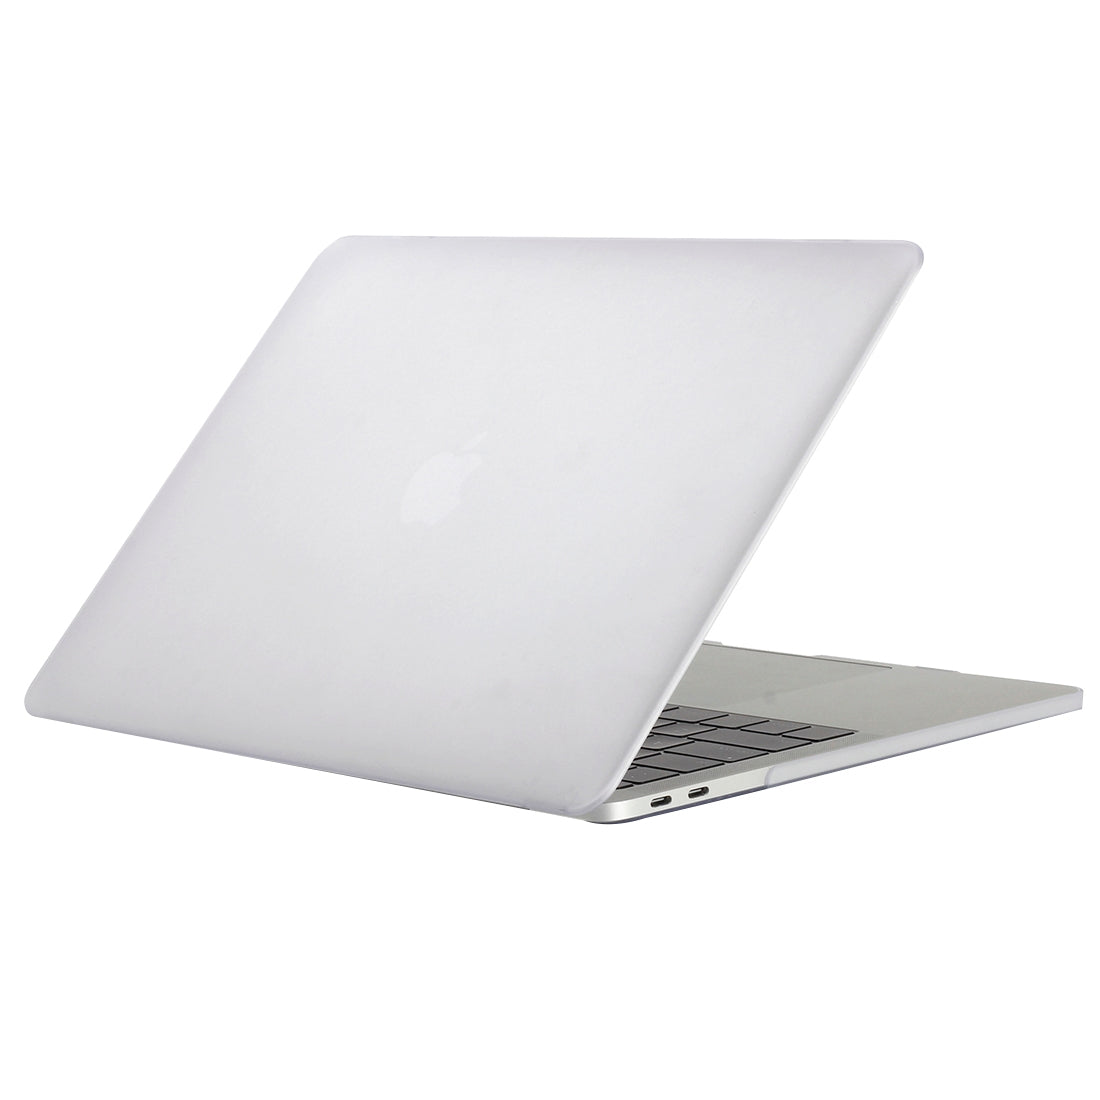 Laptop Frosted Texture PC Protective Case for 2016 New Macbook Pro 13.3 inch A2159 & A1706 & A1708(Transparent)